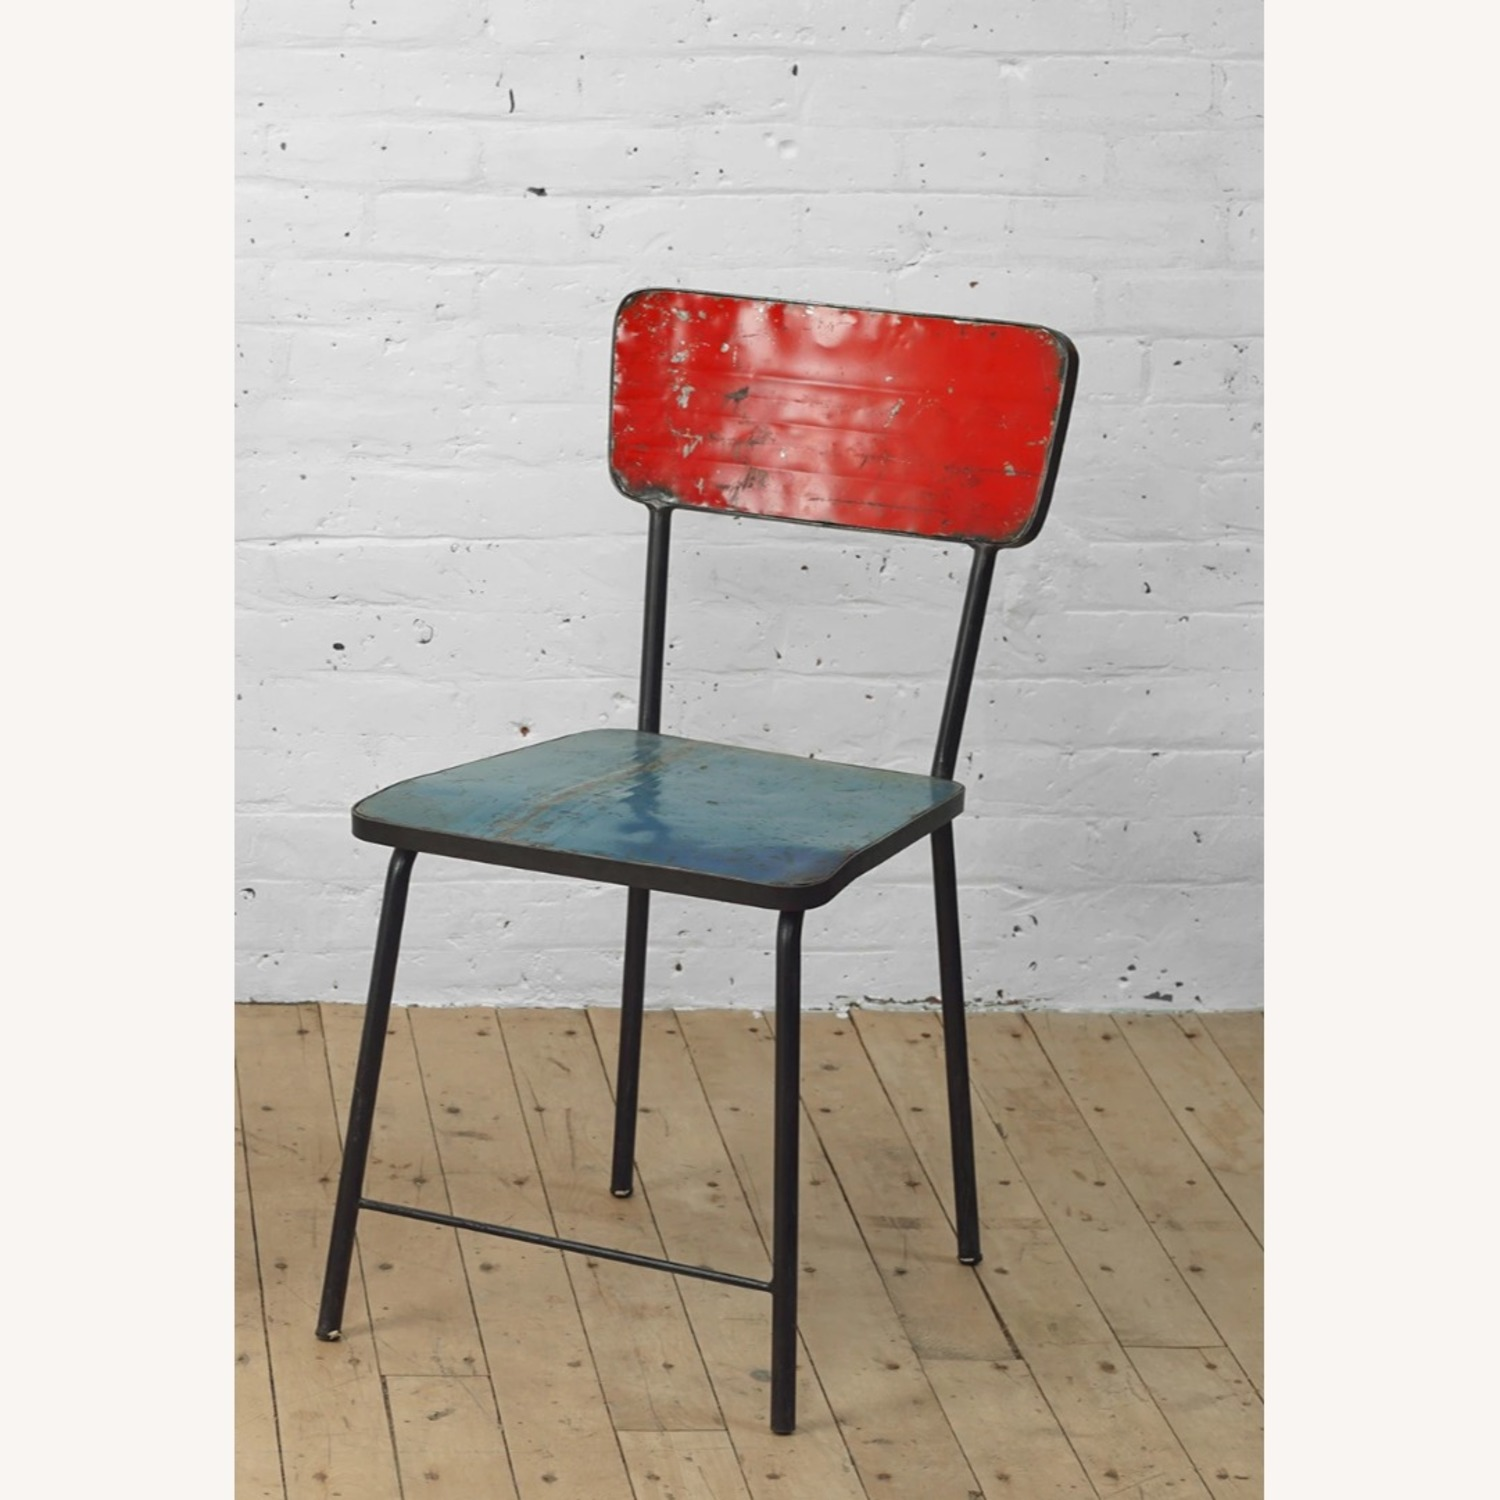 From The Source Pele Recycled Oil Drums Dining Chairs - image-1